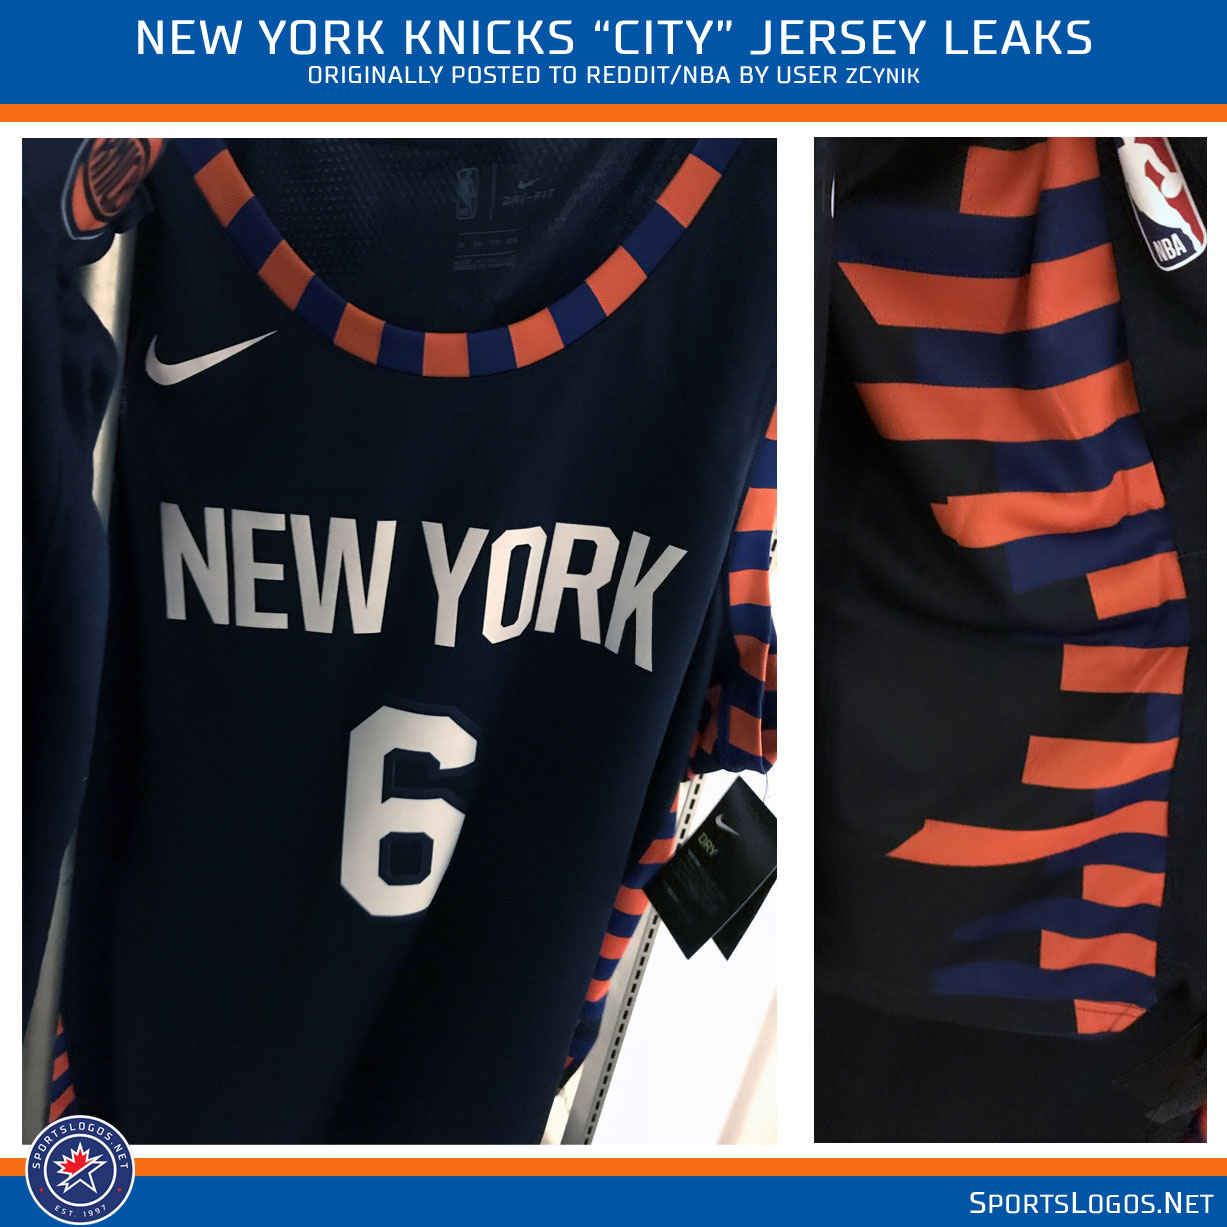 6e97d84b048f7 More NBA City Uniform Leaks  Nets